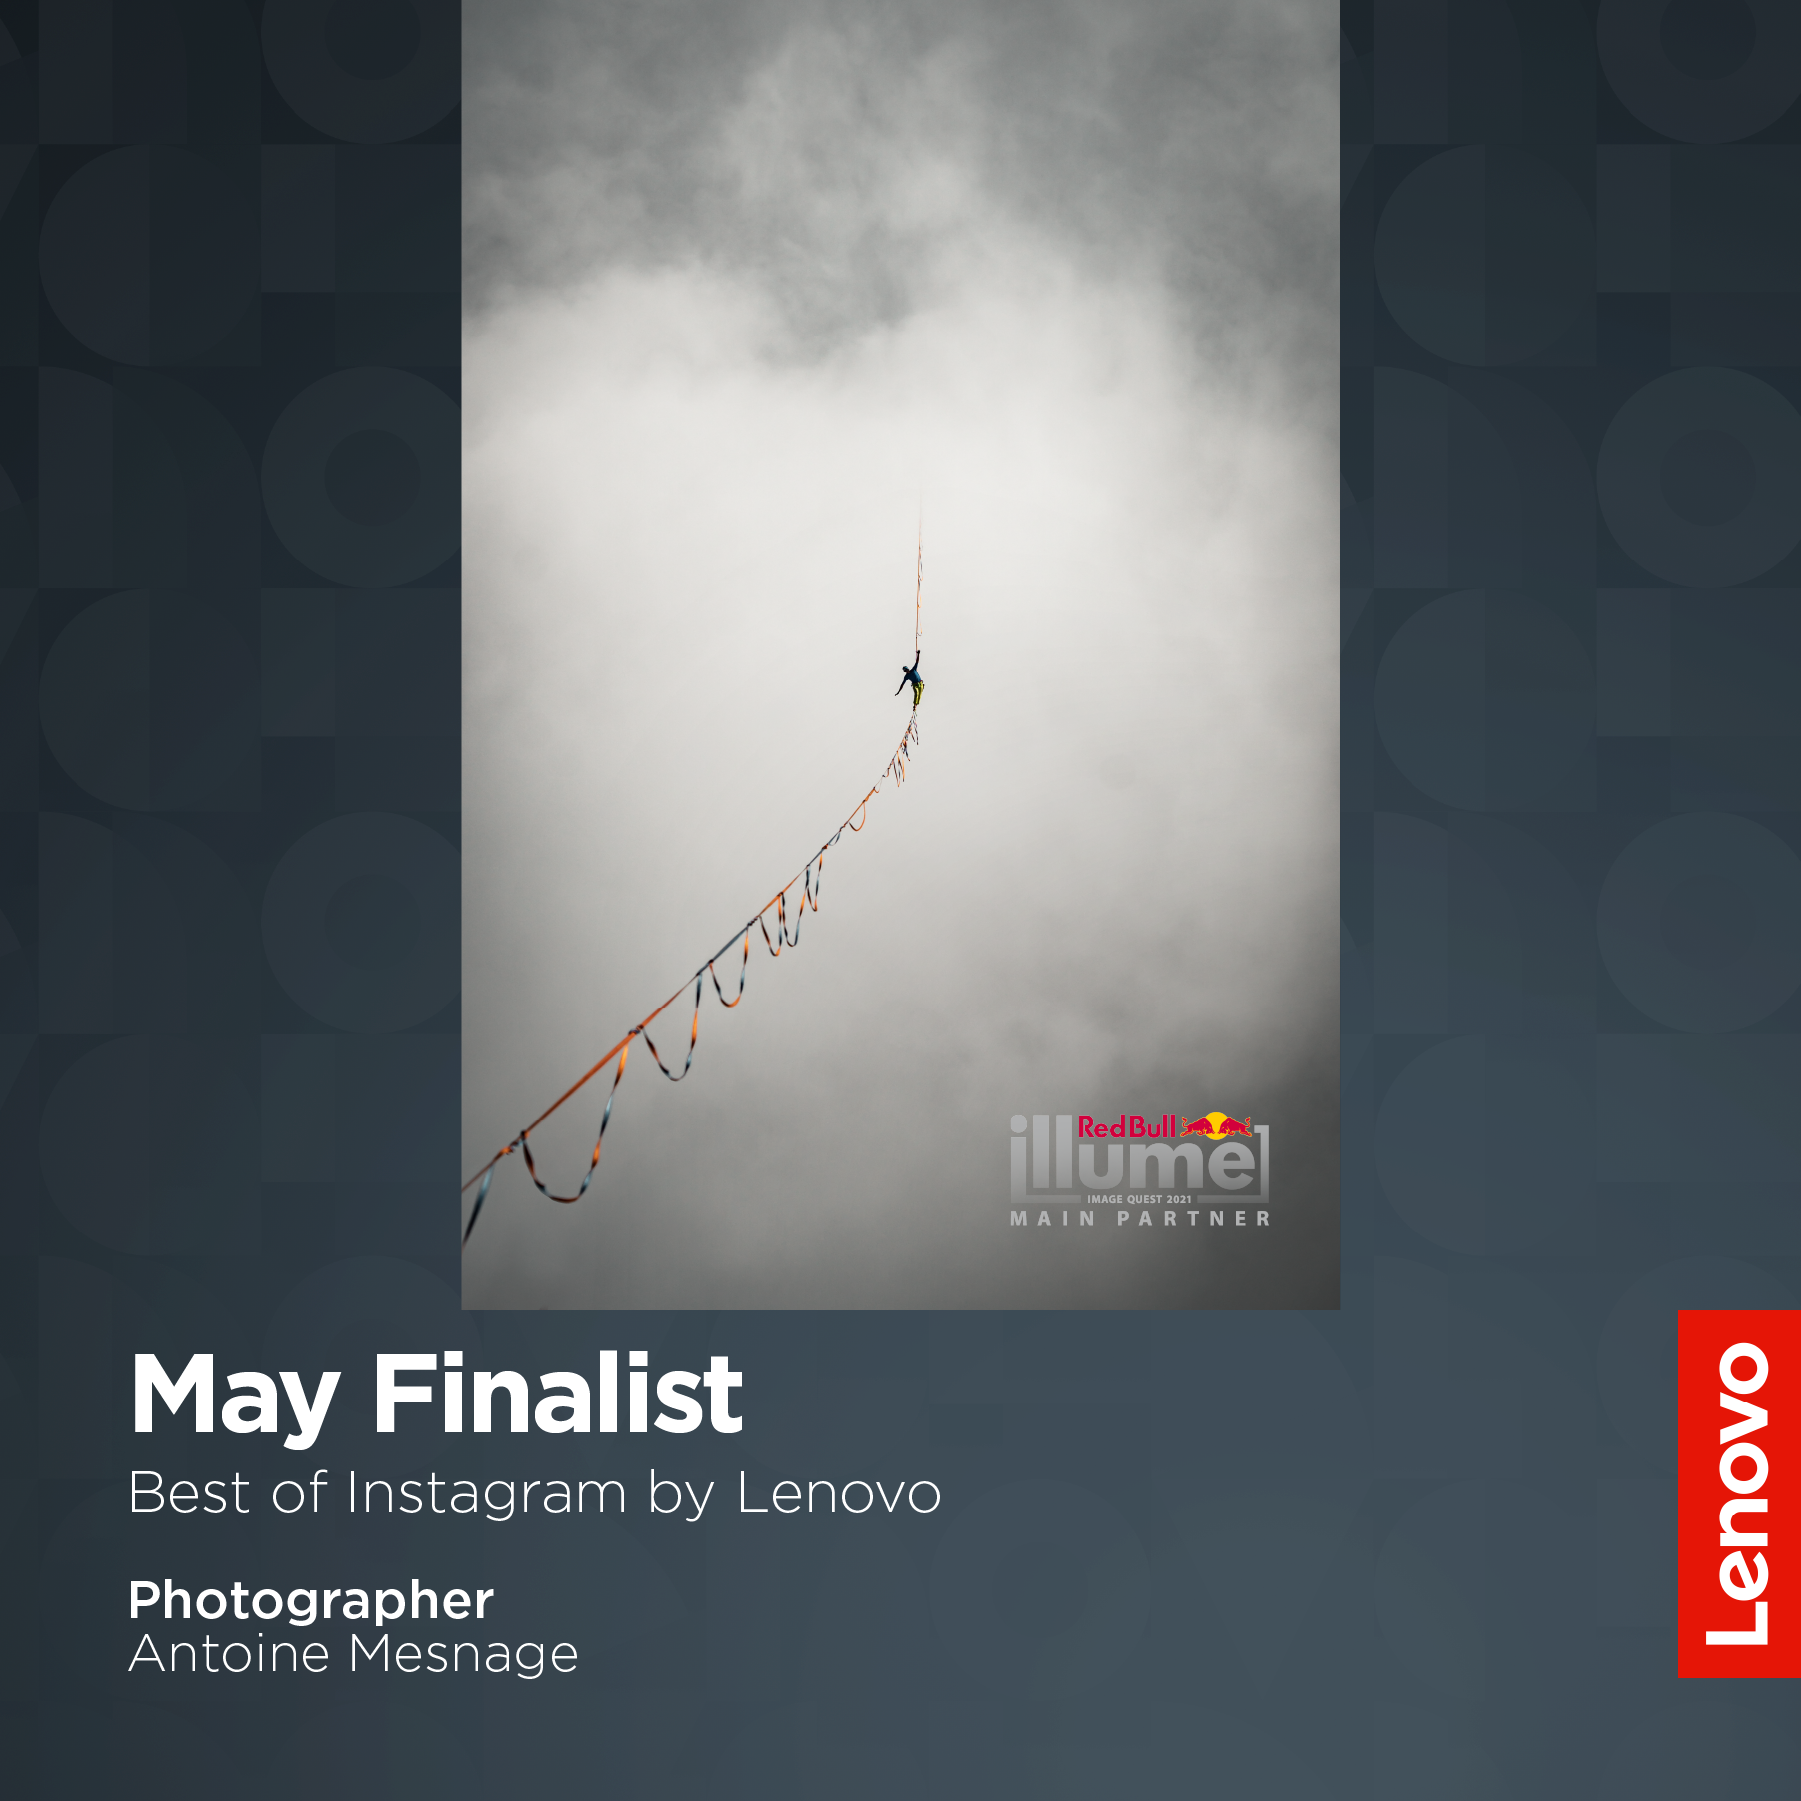 May 2021 winner for the Best of Instagram category (Presented by Lenovo) in the Red Bull Illume Contest